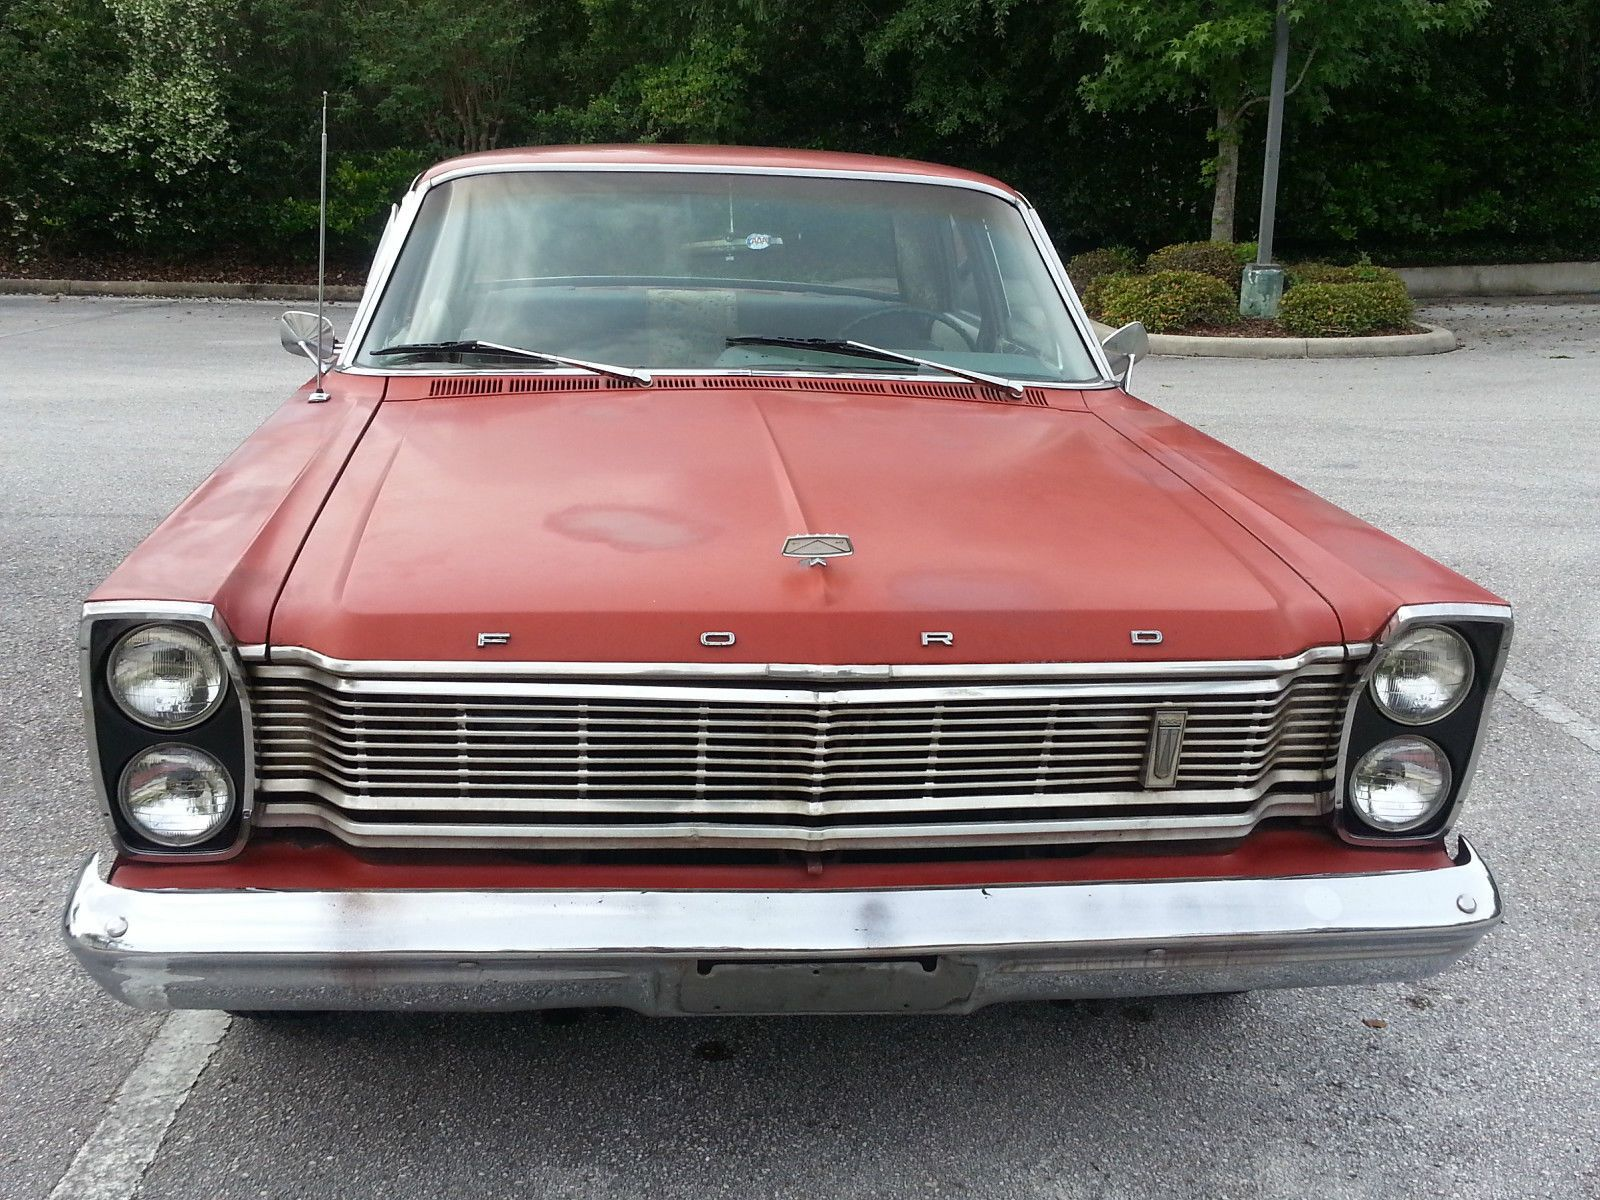 1963 ford galaxie 289 - 1965 Ford Galaxie 500 4 Door Runs And Drives Great V8 289